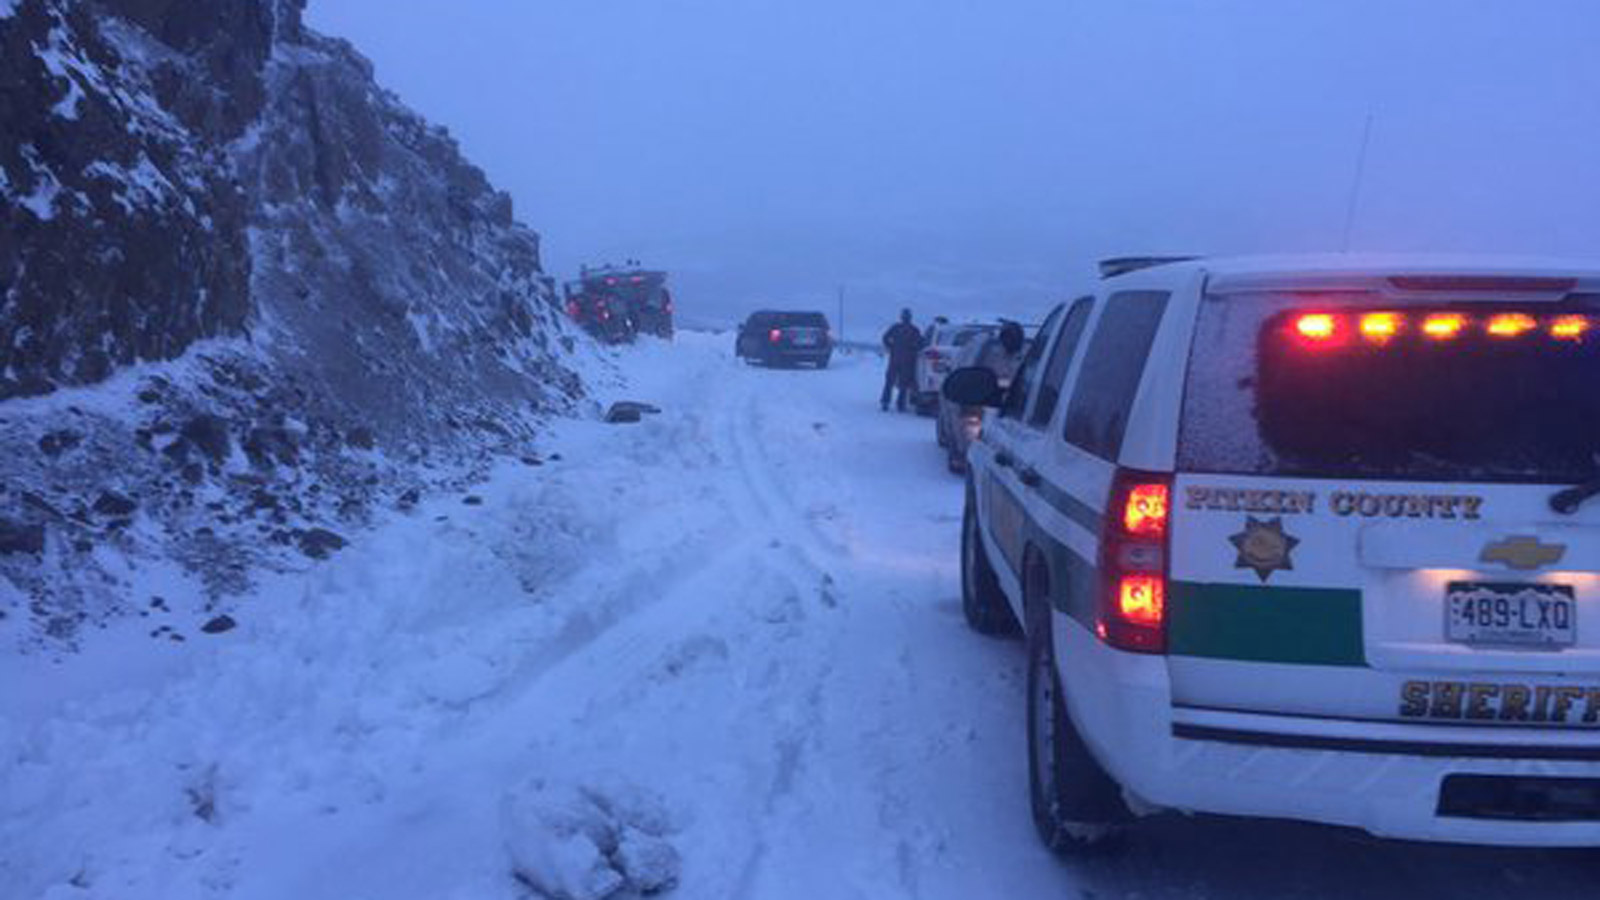 Independence Pass on Oct. 23, 2015 (credit: Pitkin County Sheriff's office)